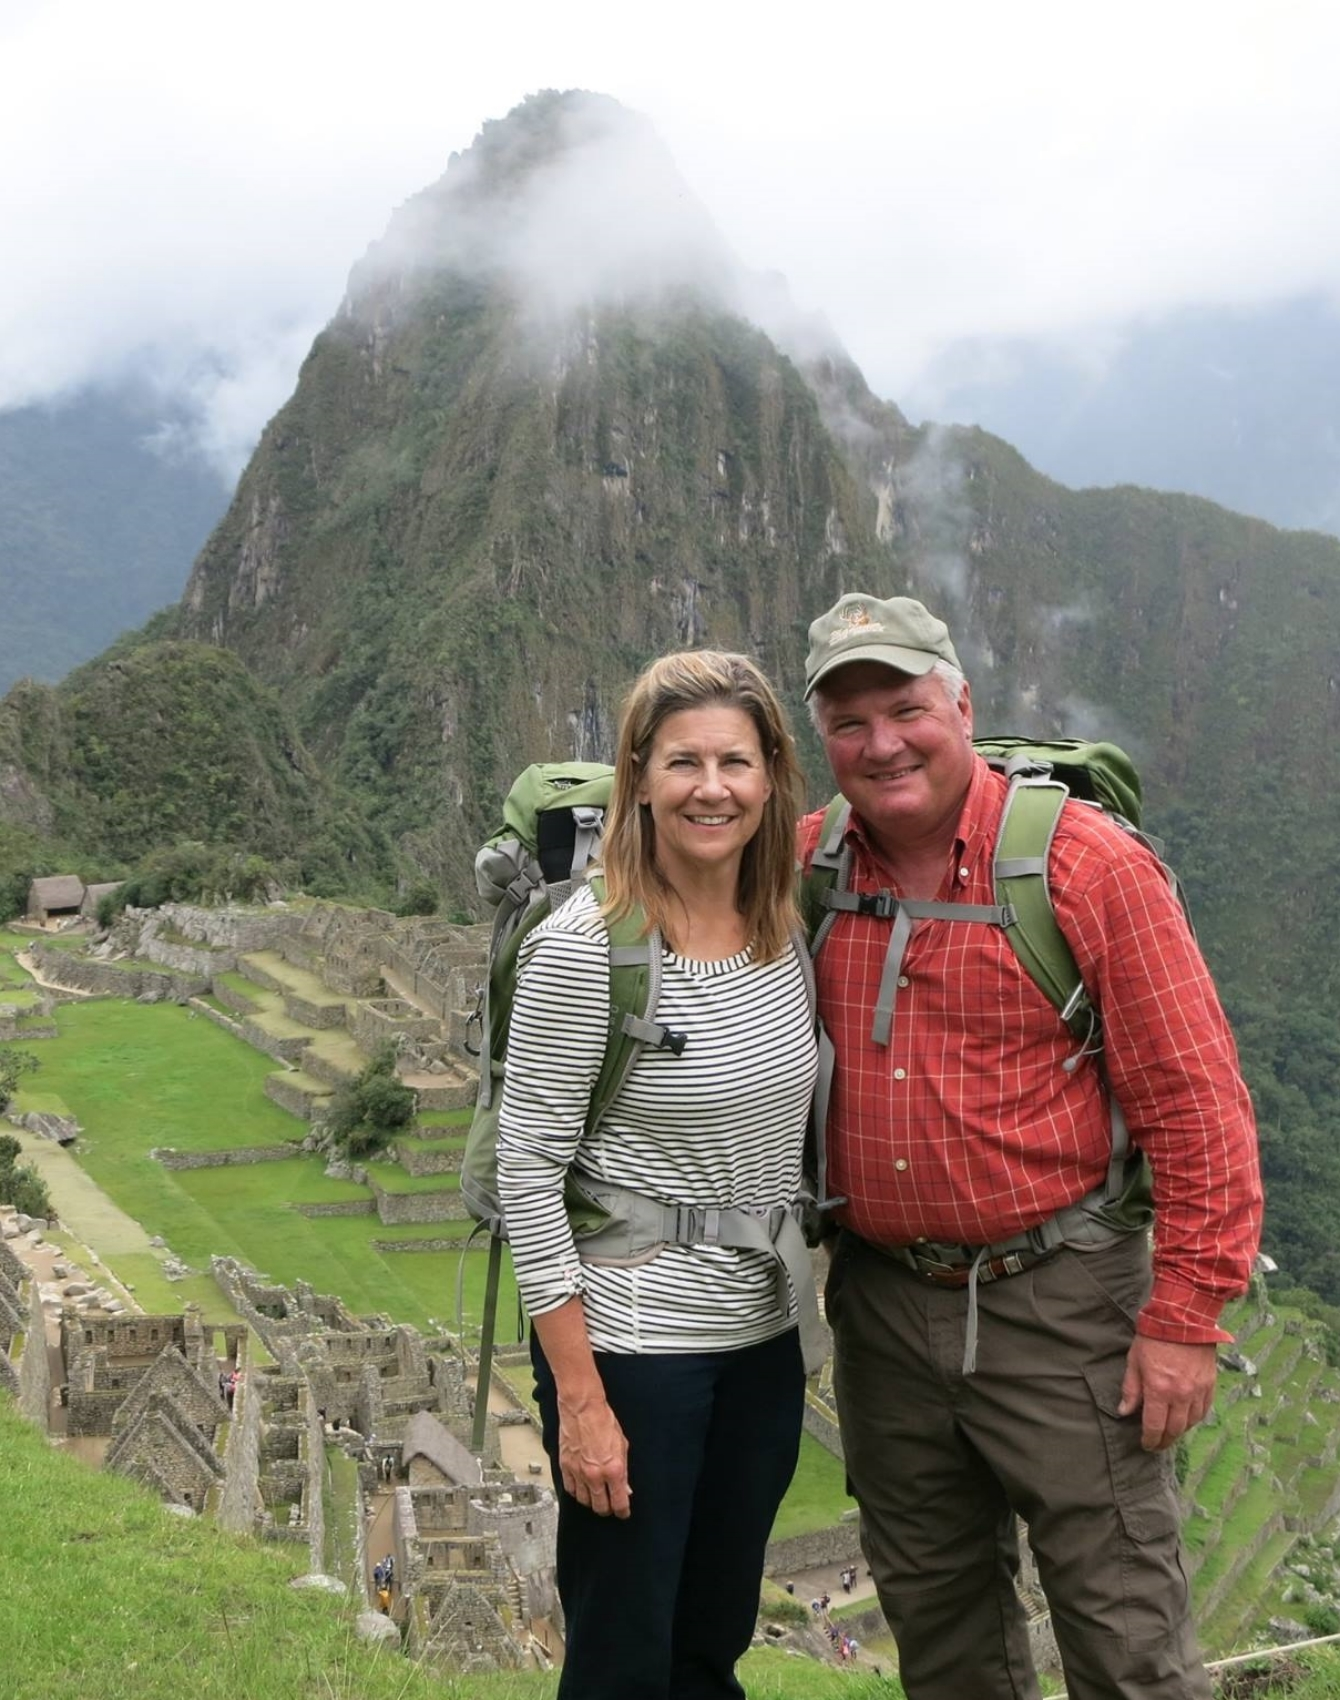 AIYM Founder, Jim Roche and wife, Melony